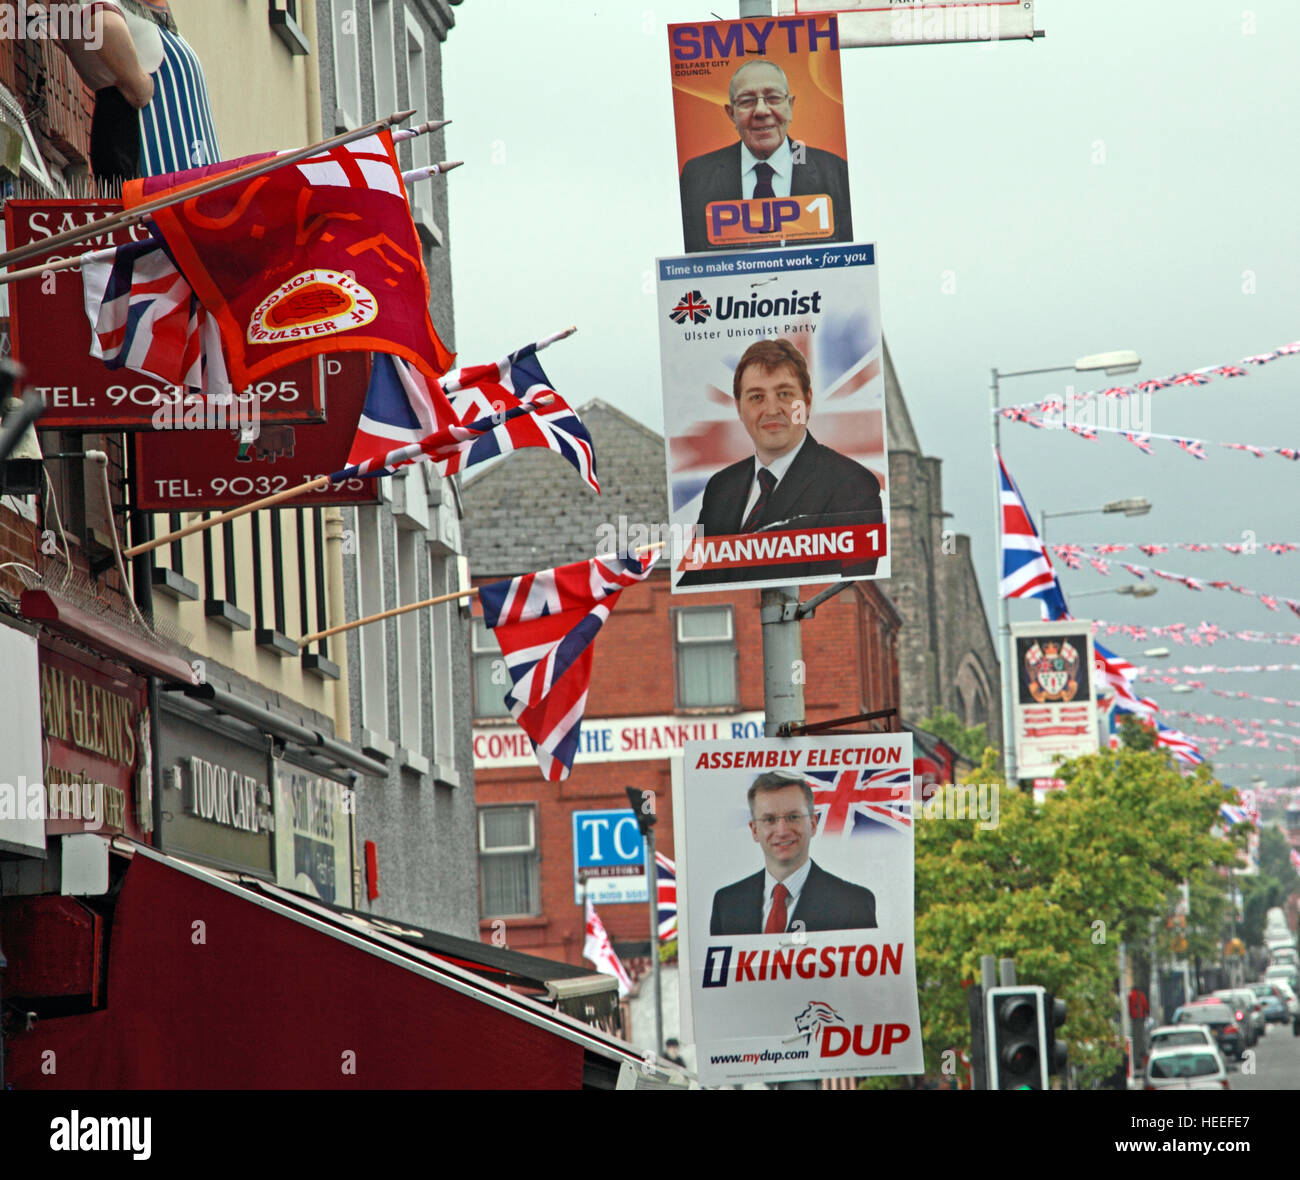 Belfast Unionist, Loyalist Shankill Rd during local elections,DUP,PUP with union flags - Stock Image